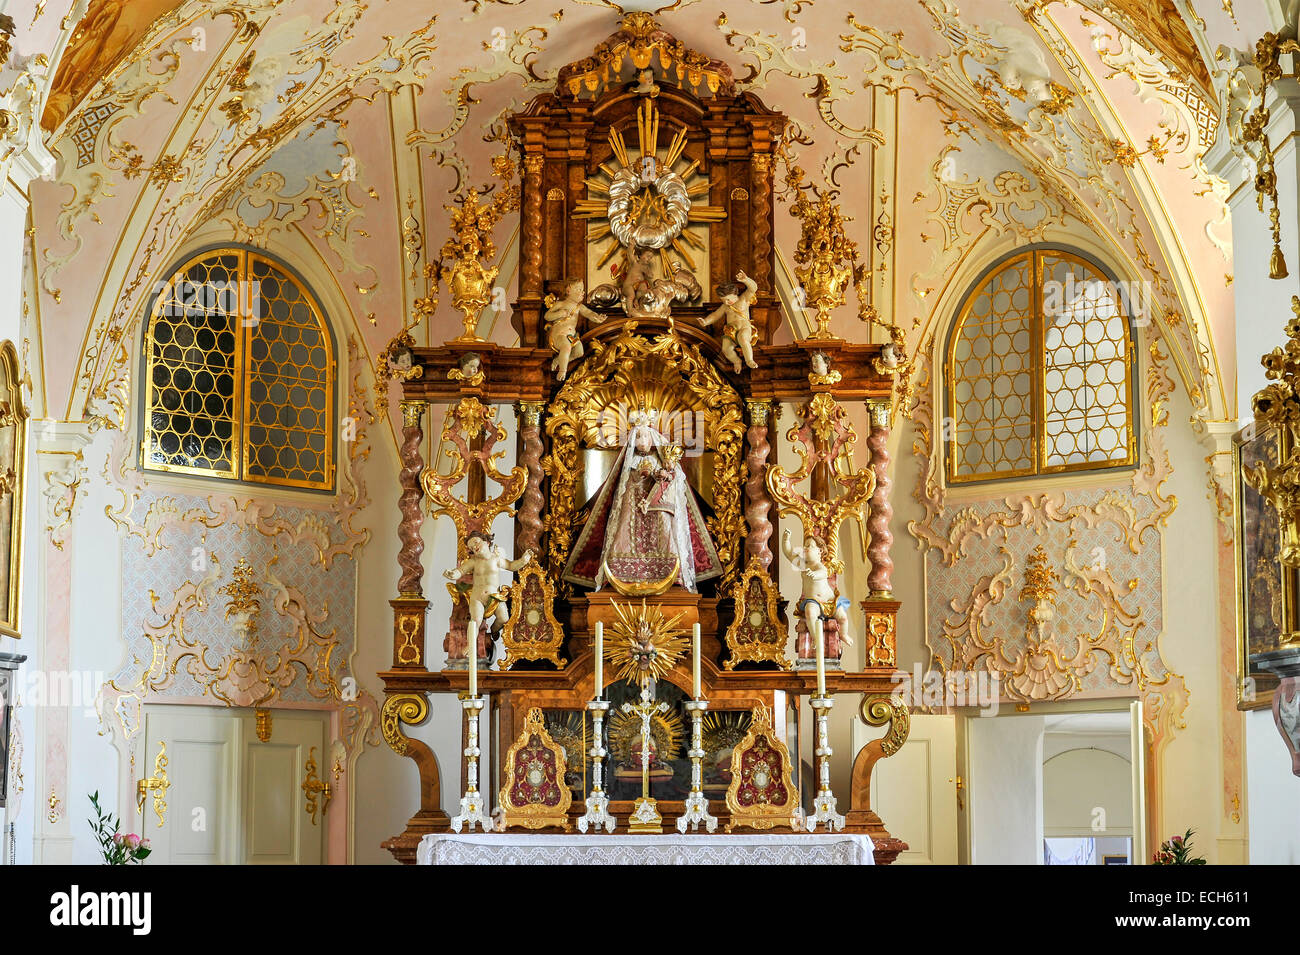 Main altar with painting, chapel with Rococo interiors Pilgrimage Church of the Assumption, Hohenpeißenberg, - Stock Image